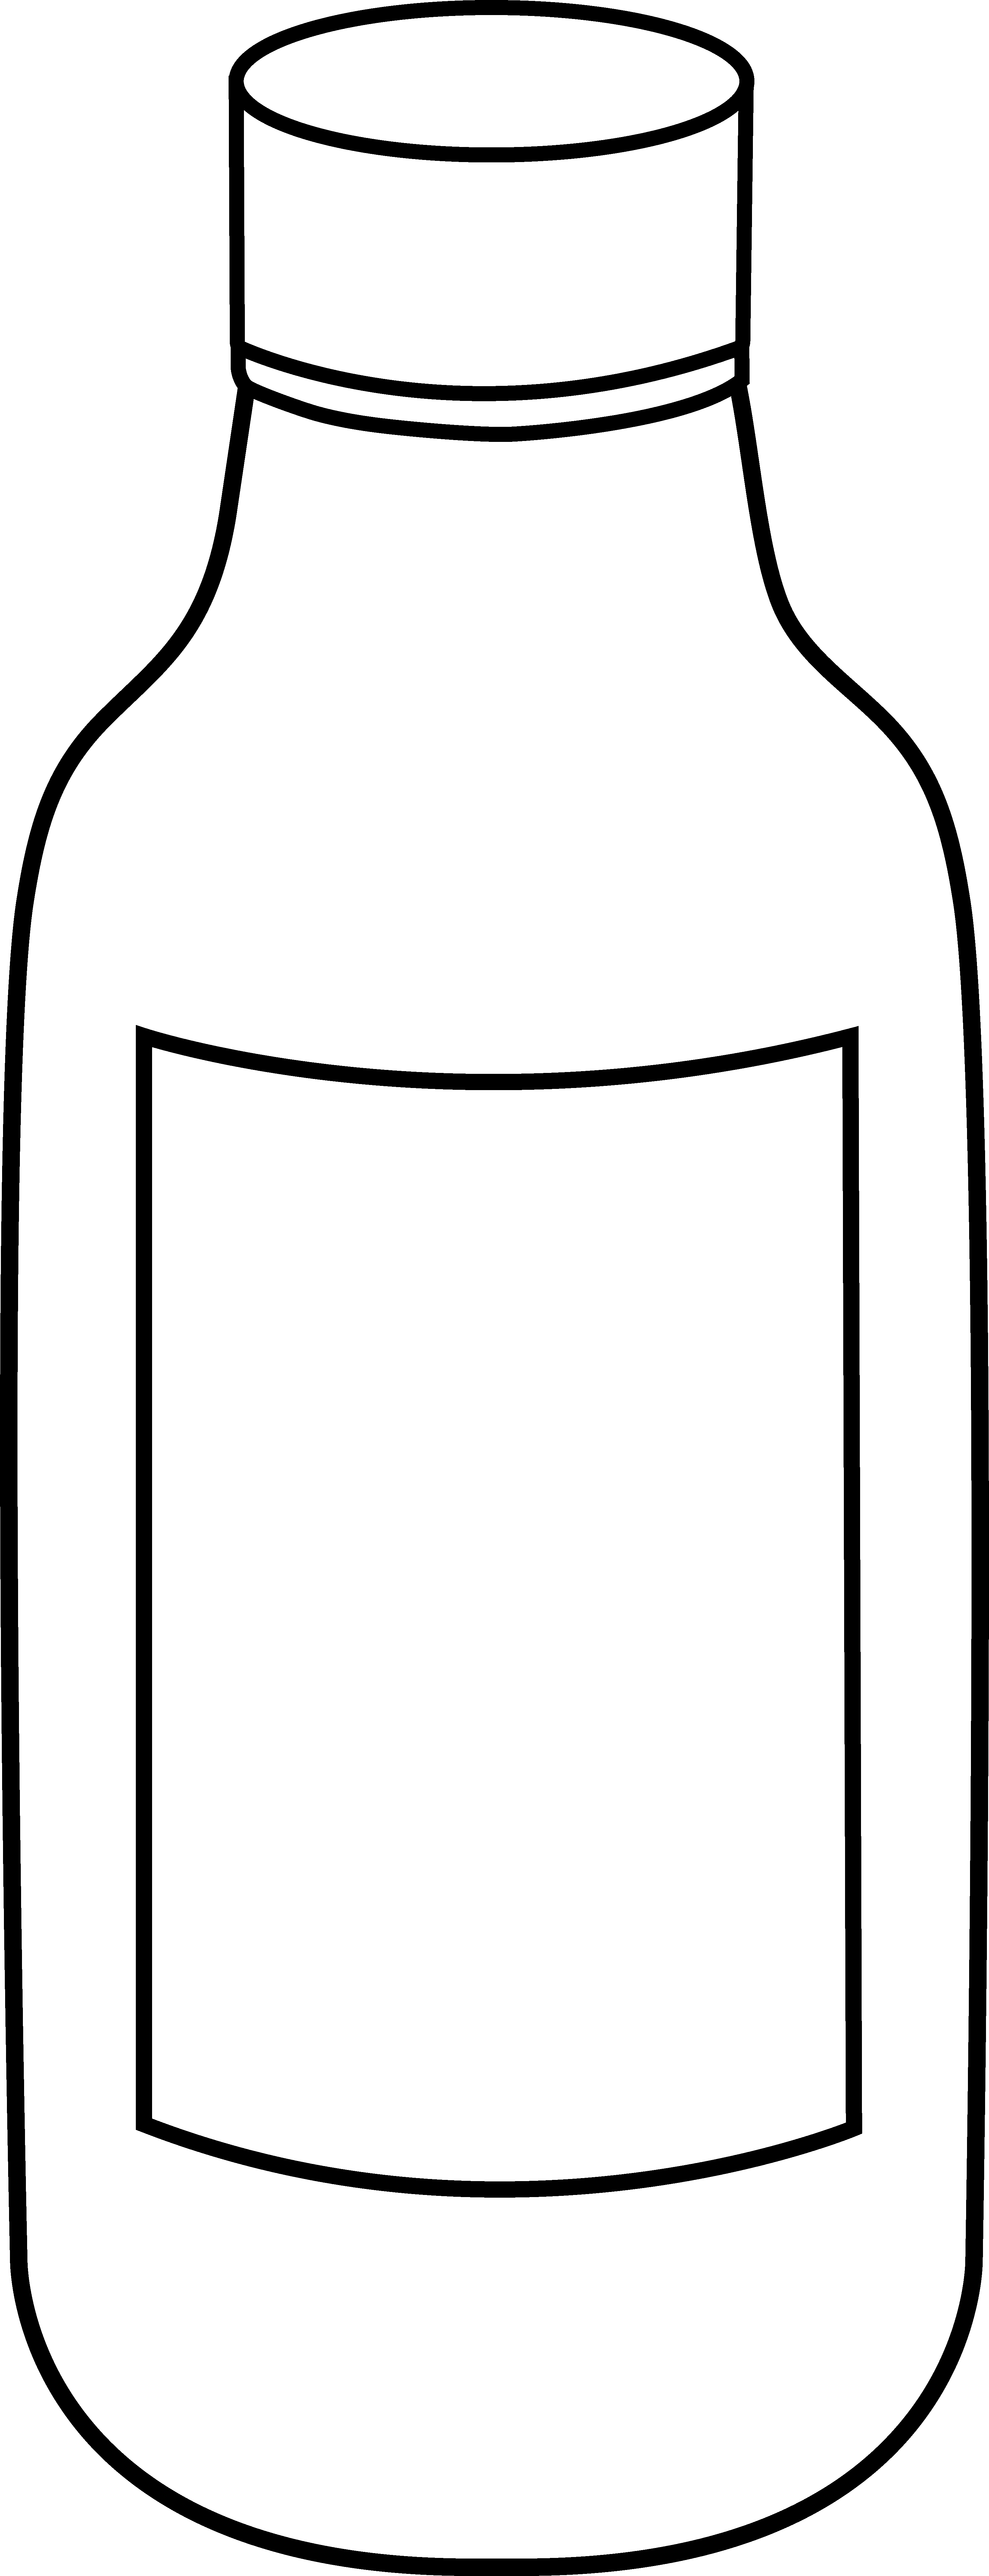 banner library stock Water bottle panda free. Soda clipart black and white